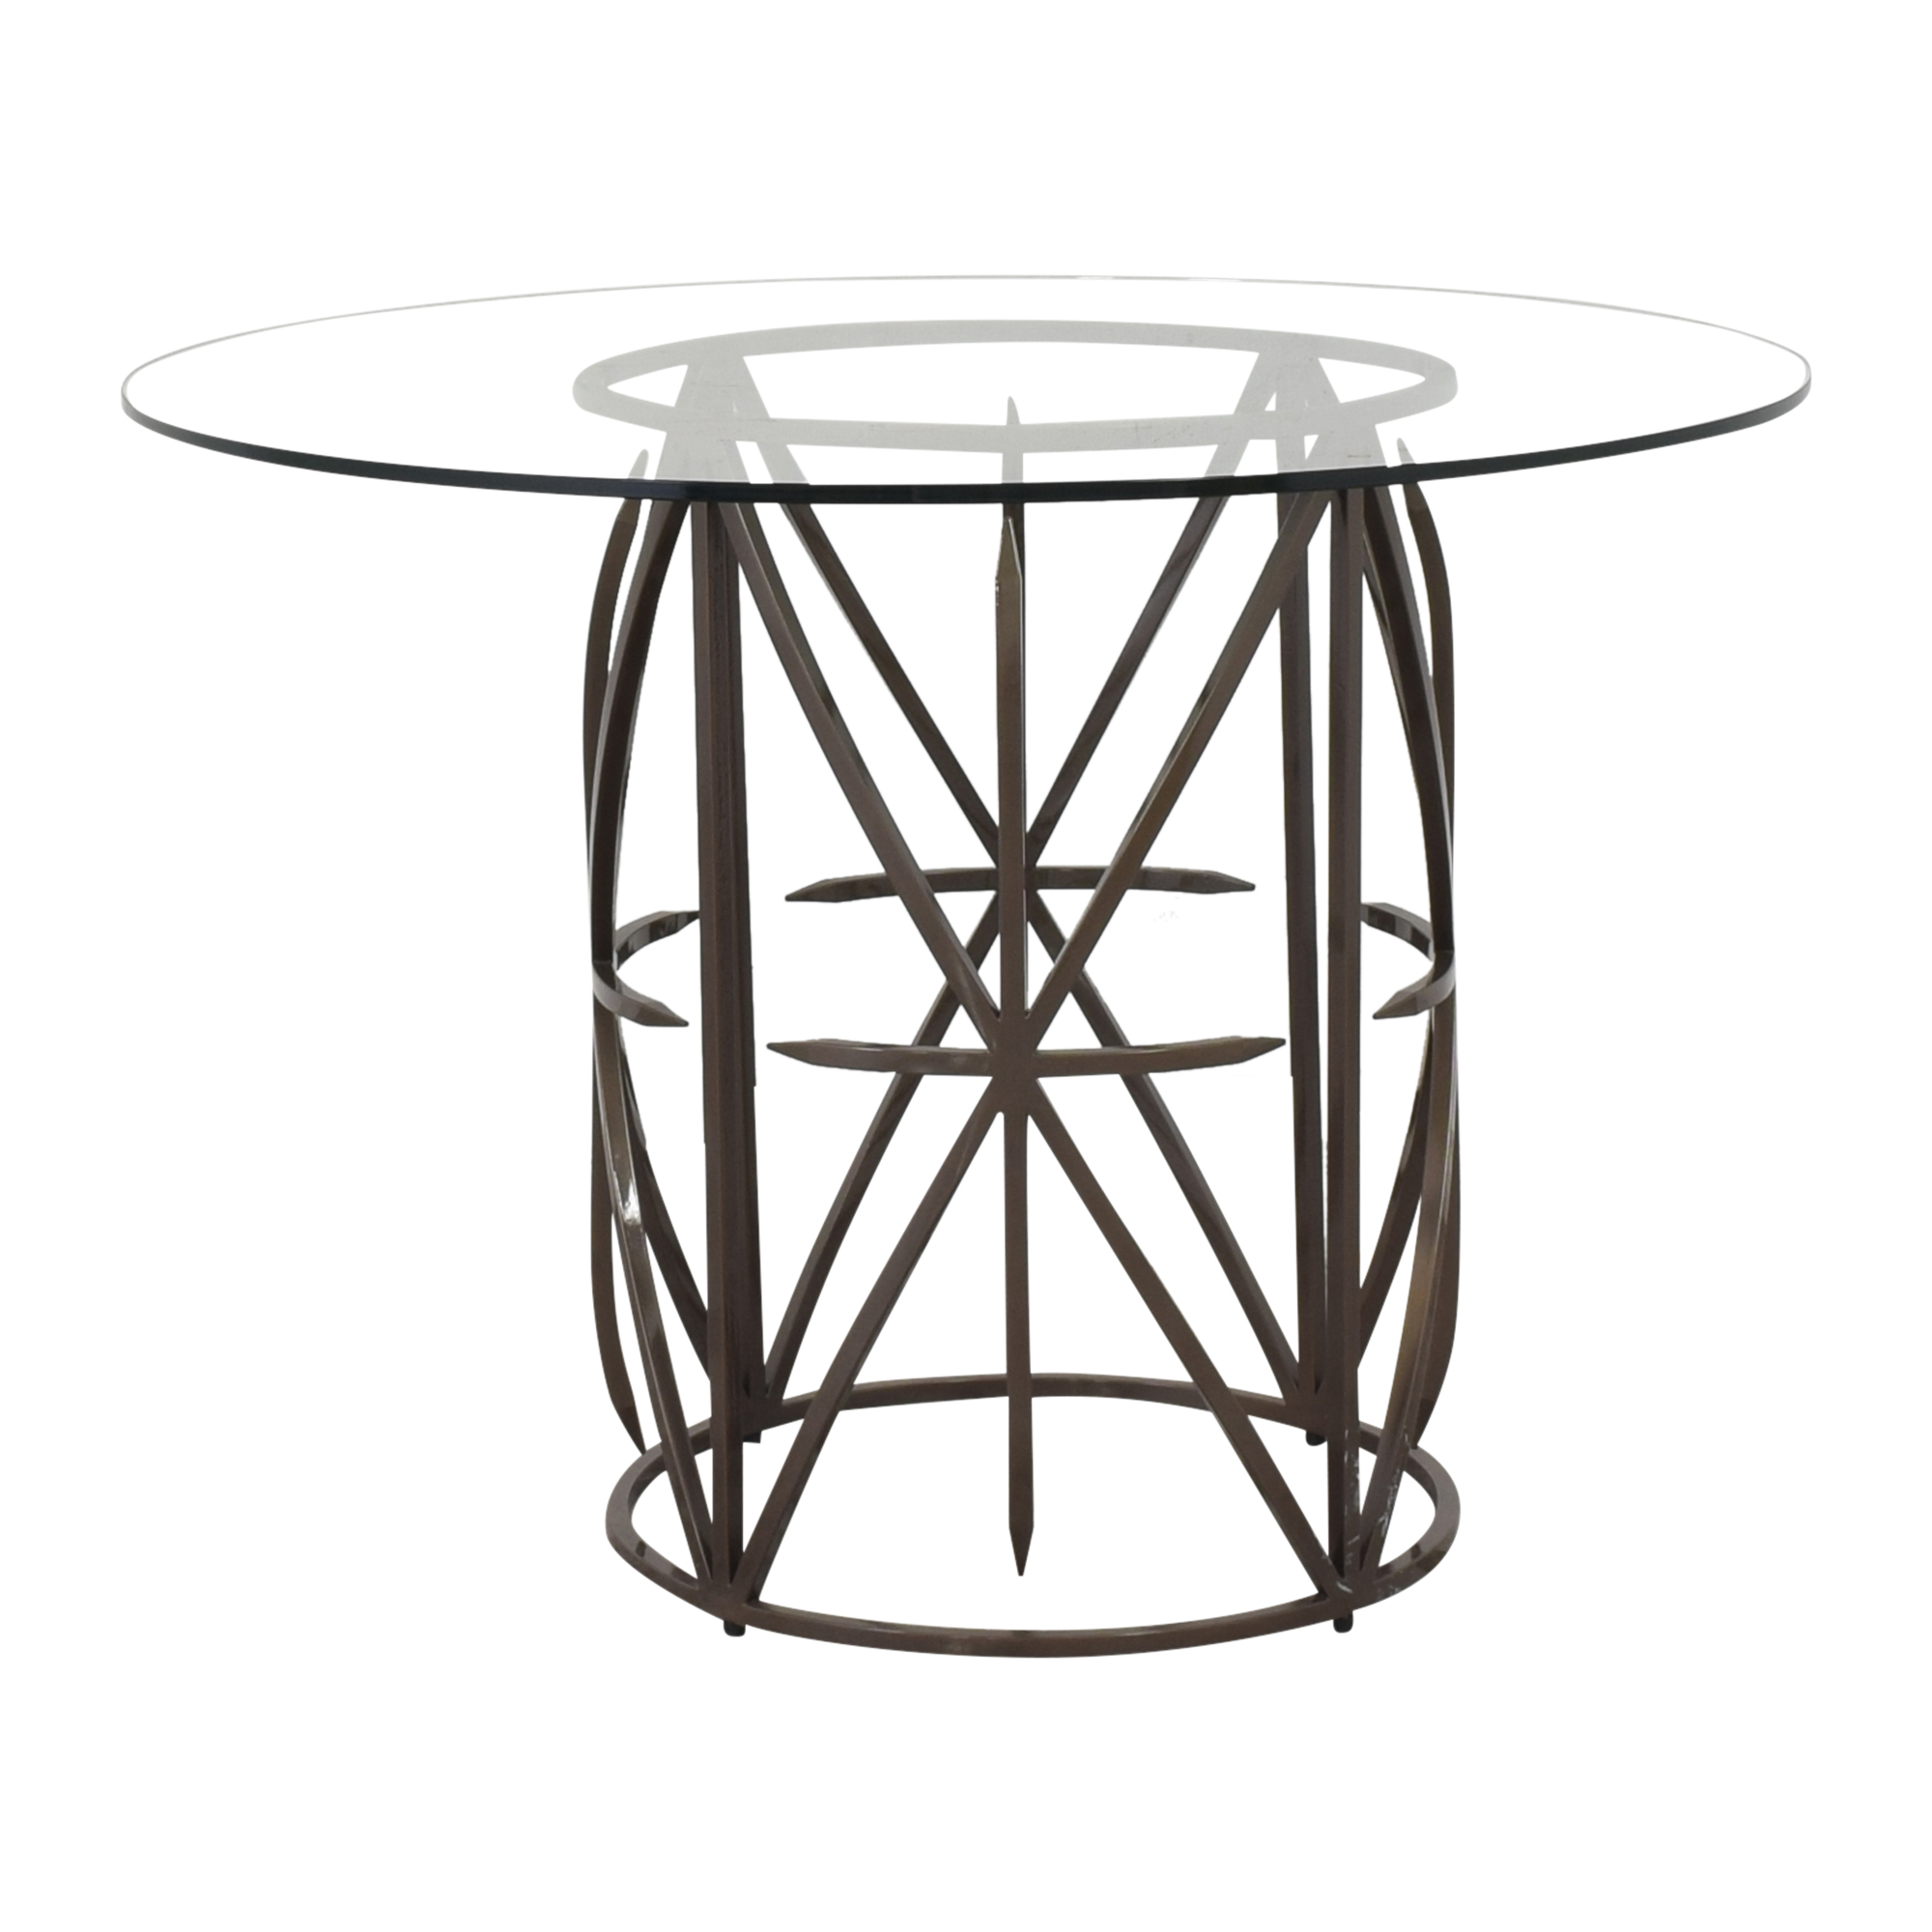 shop Bolier & Company Bolier & Company Round Dining Table online